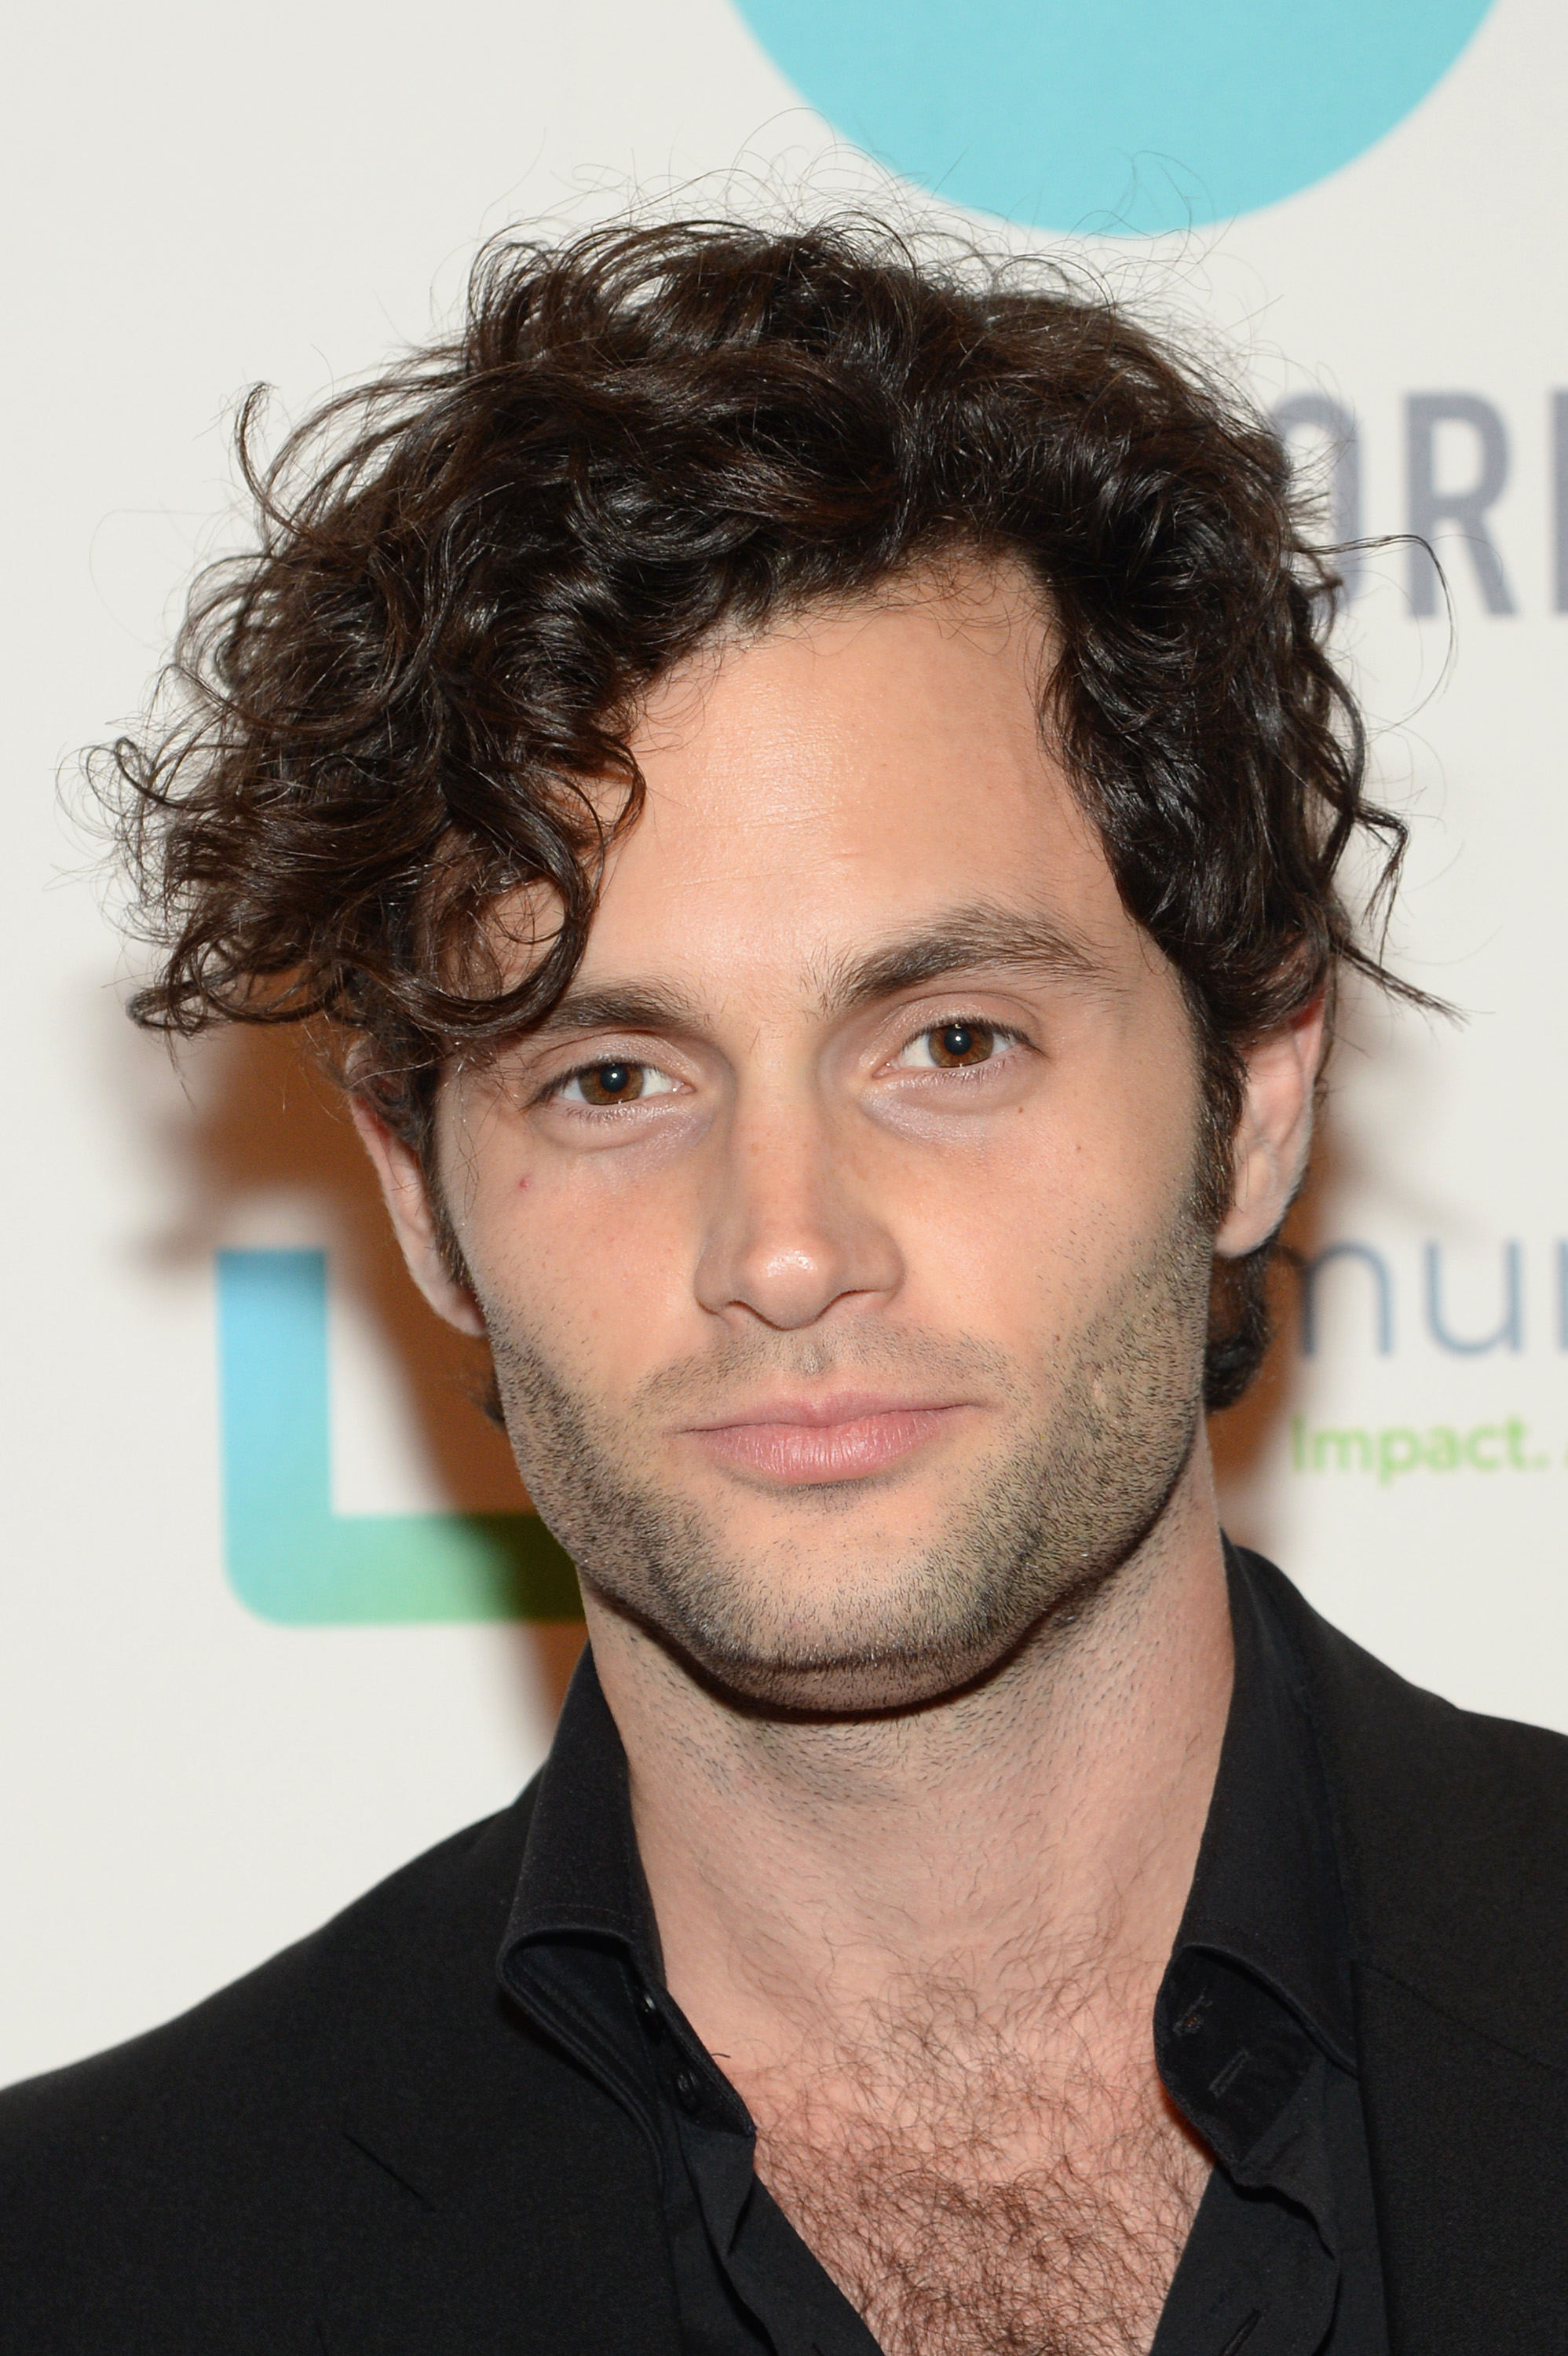 Gossip Girl Star Penn Badgely Gets Real About Misogyny